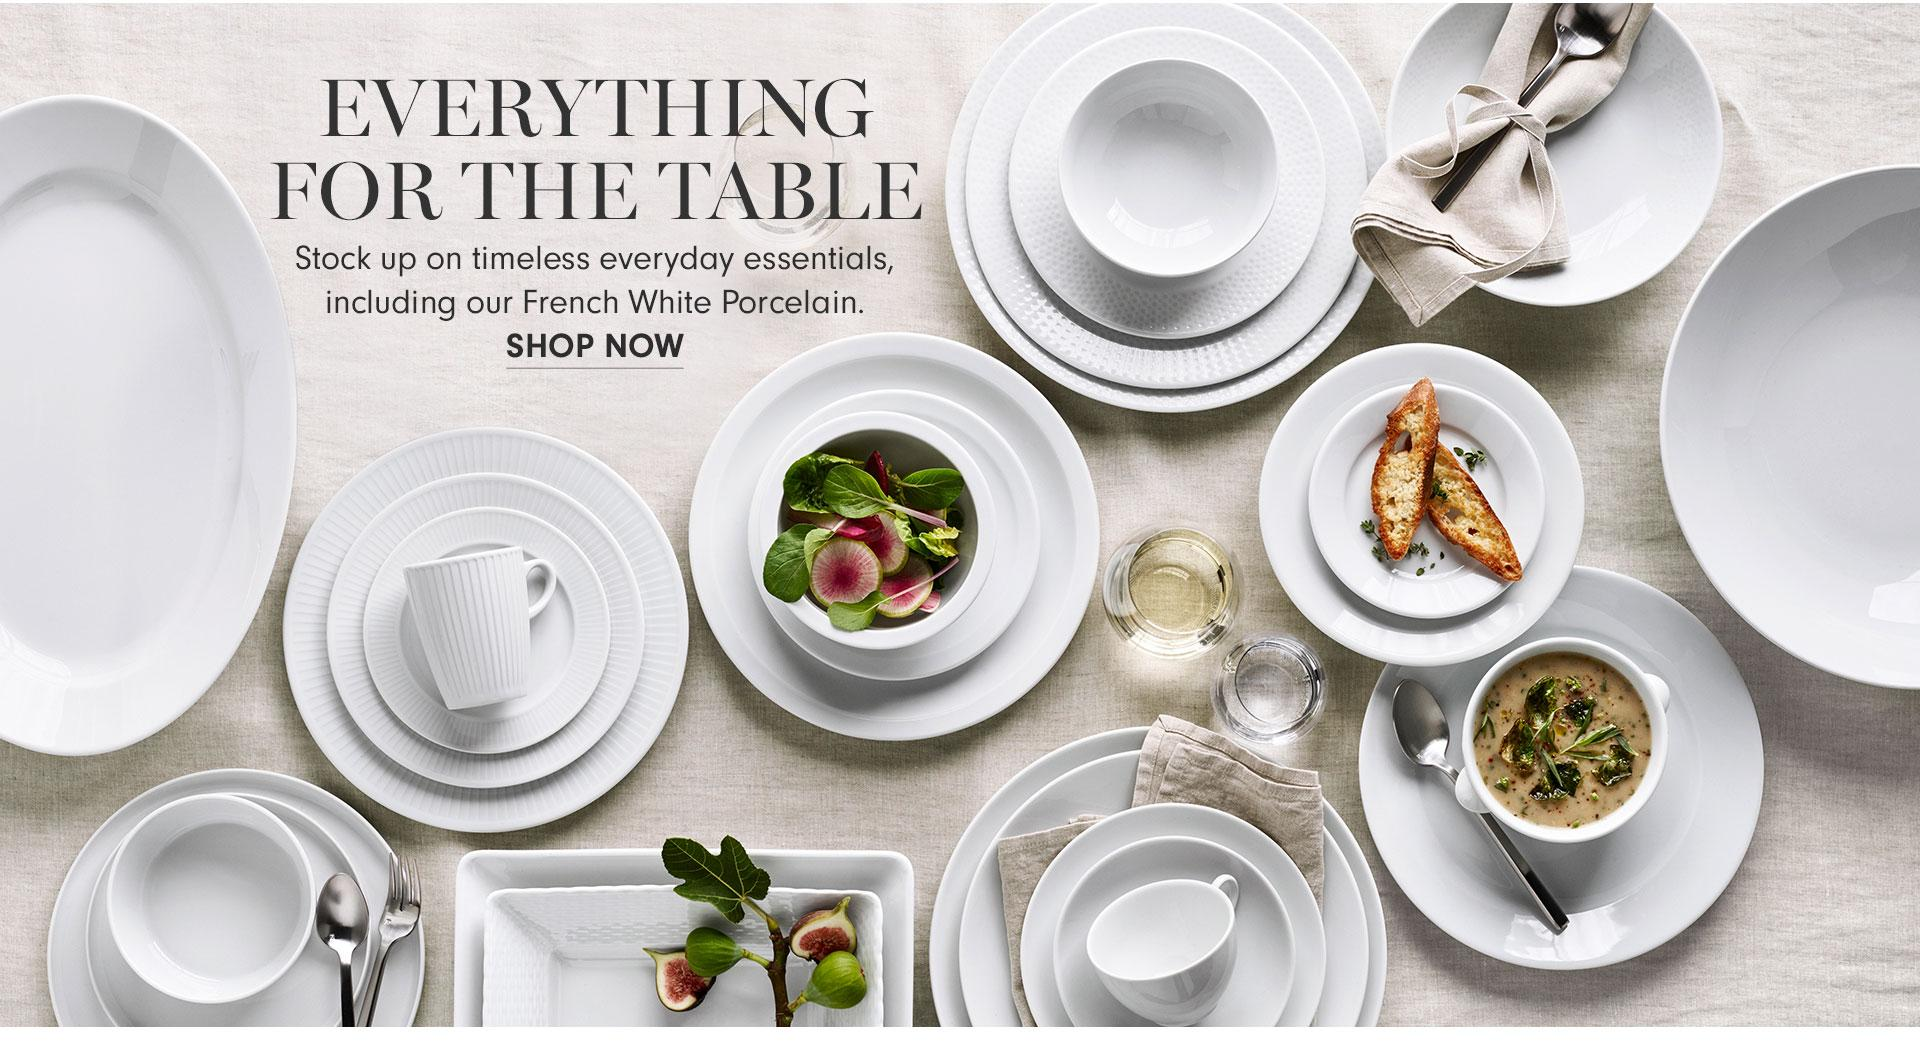 Tabletop Essentials with French White Porcelain